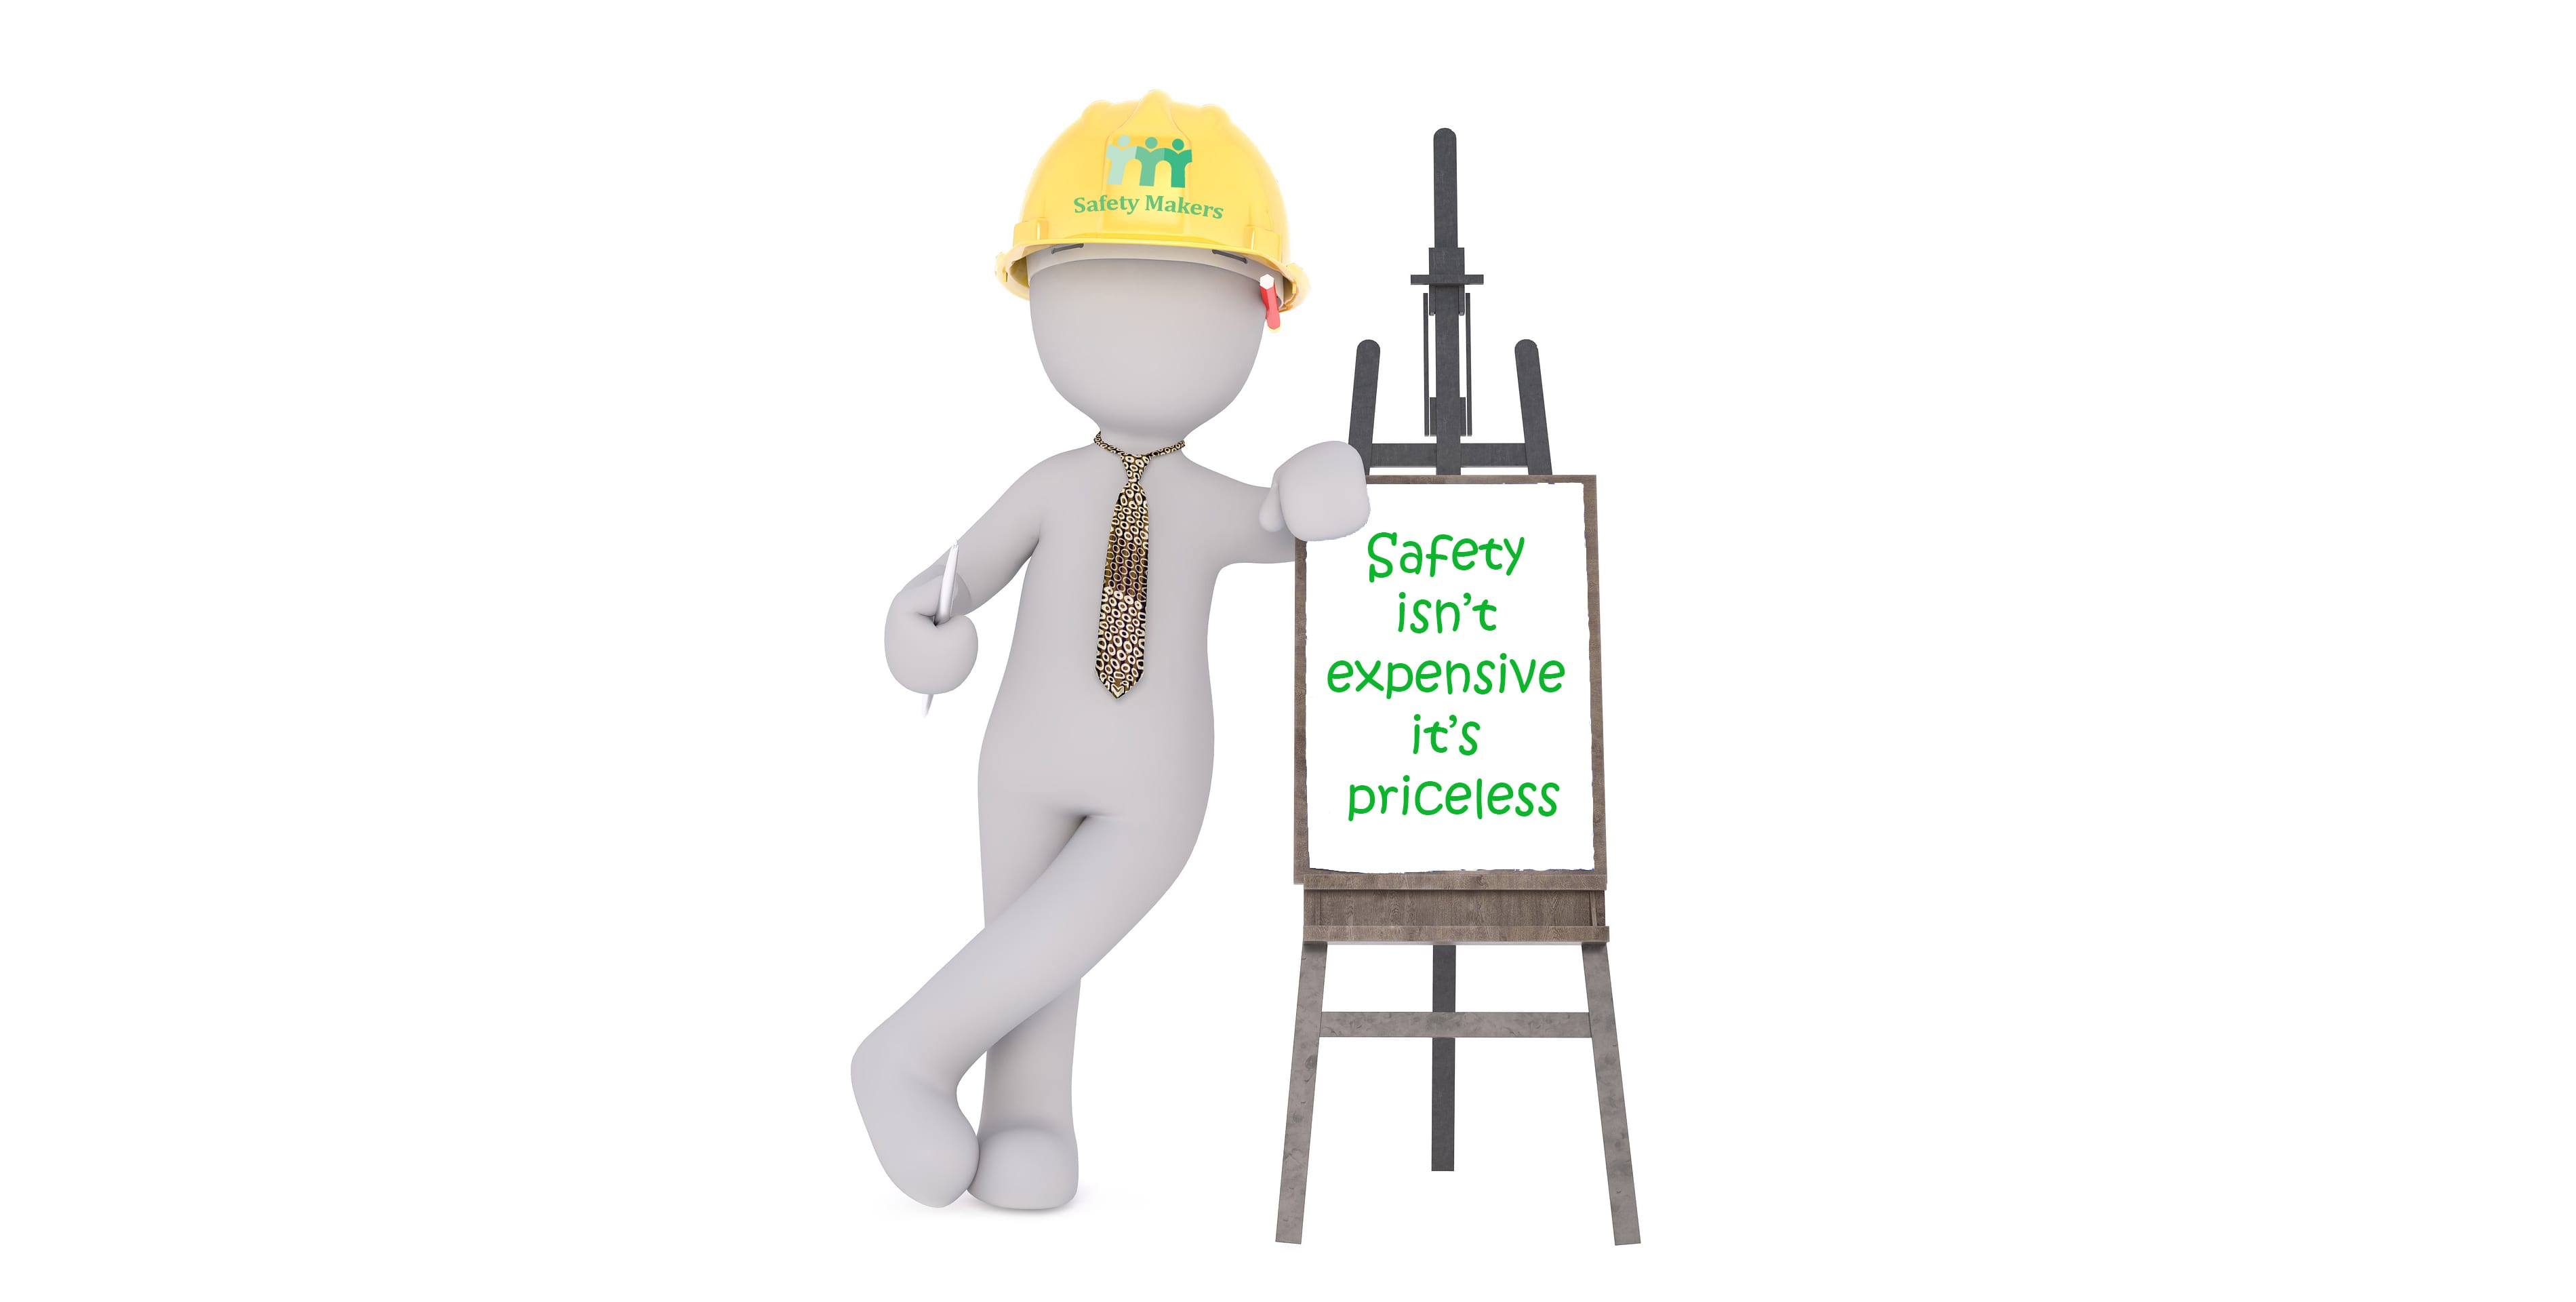 safety is inexpensive